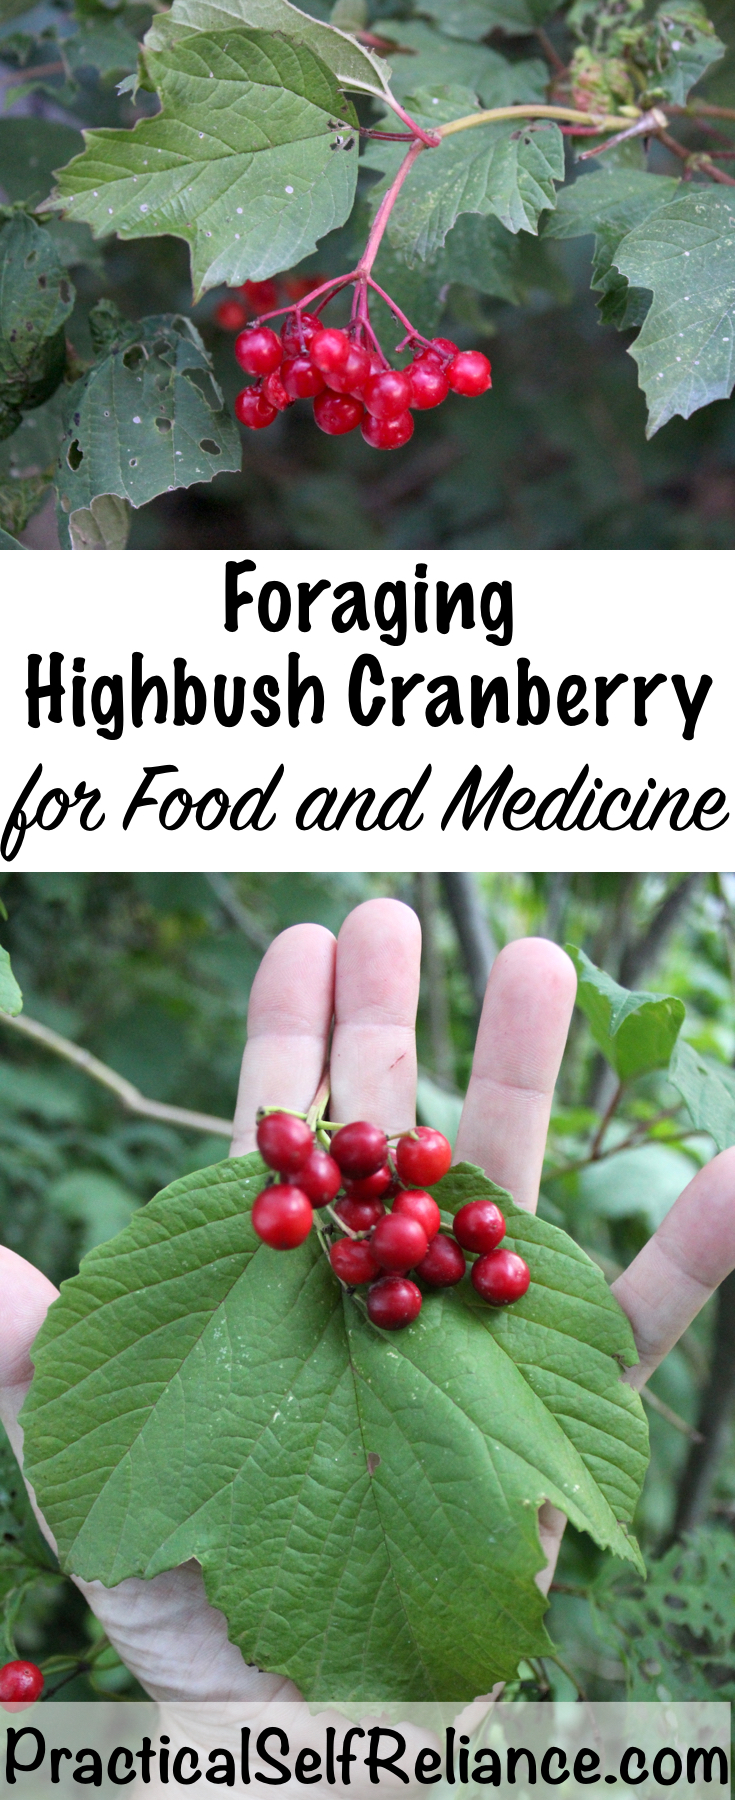 Foraging Highbush Cranberry for Food and Medicine